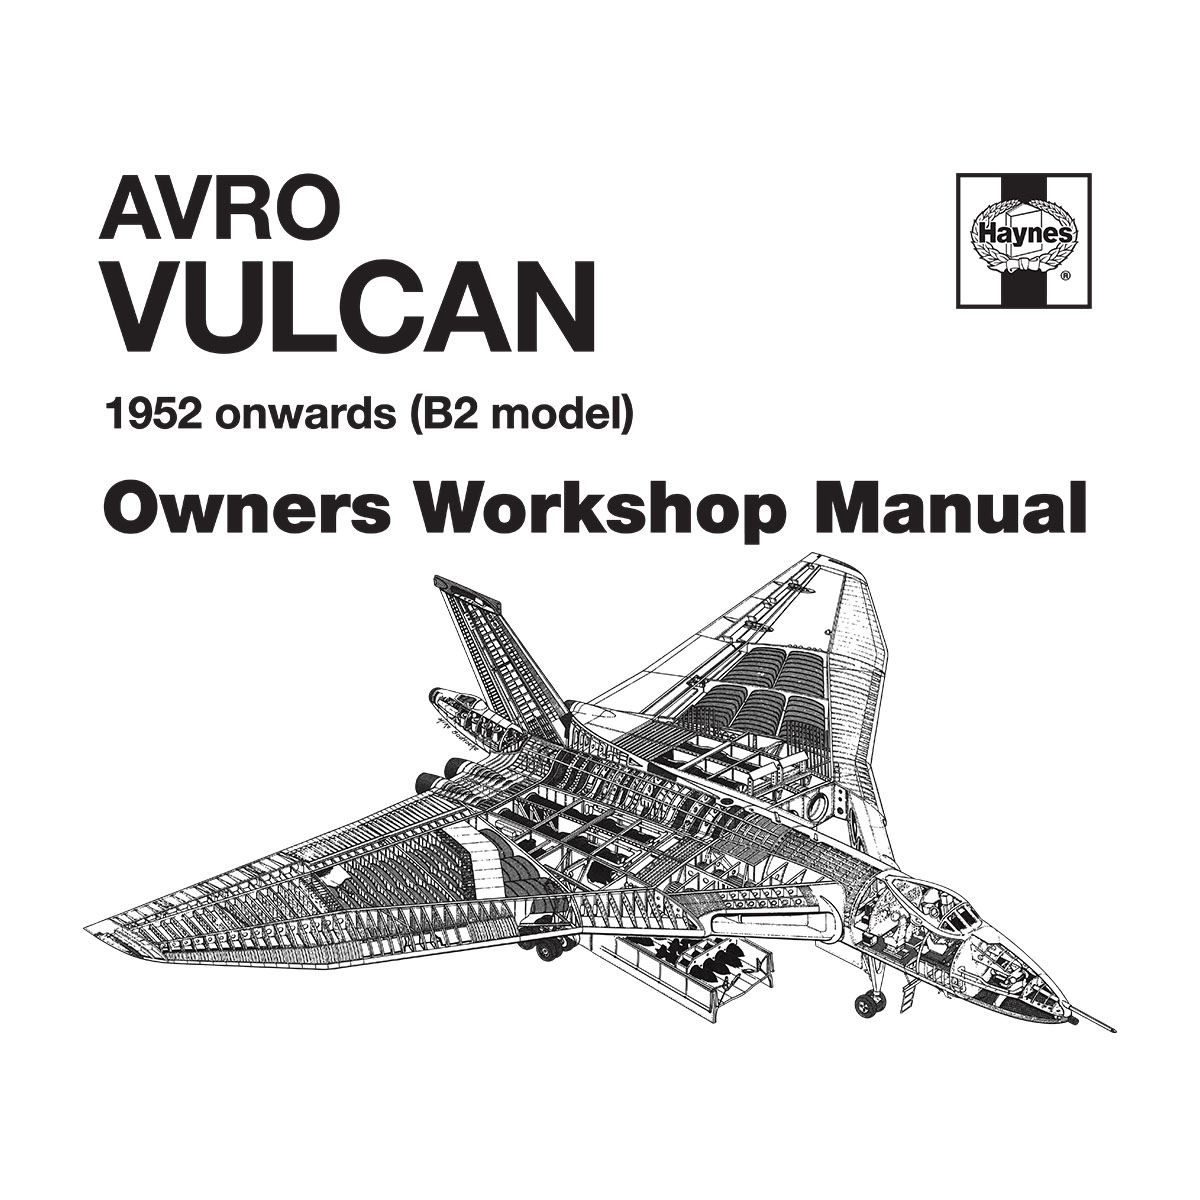 Haynes Officina Proprietari Manuale AVRO VULCAN 1952 B2 T